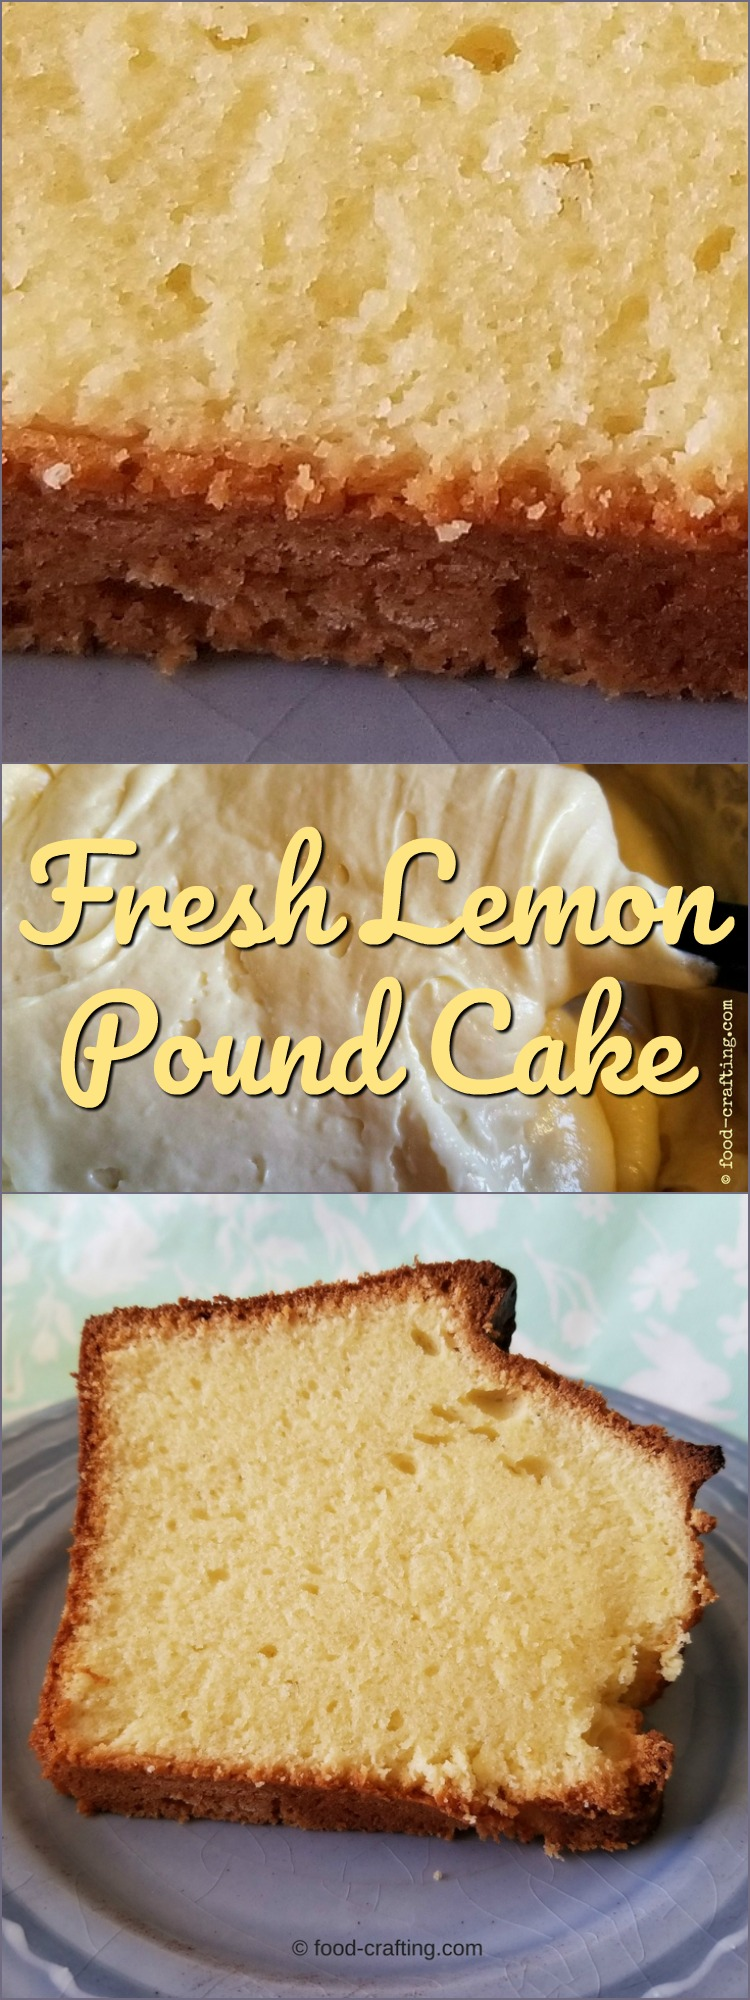 This homemade fresh lemon pound cake is a vintage style classic dessert.